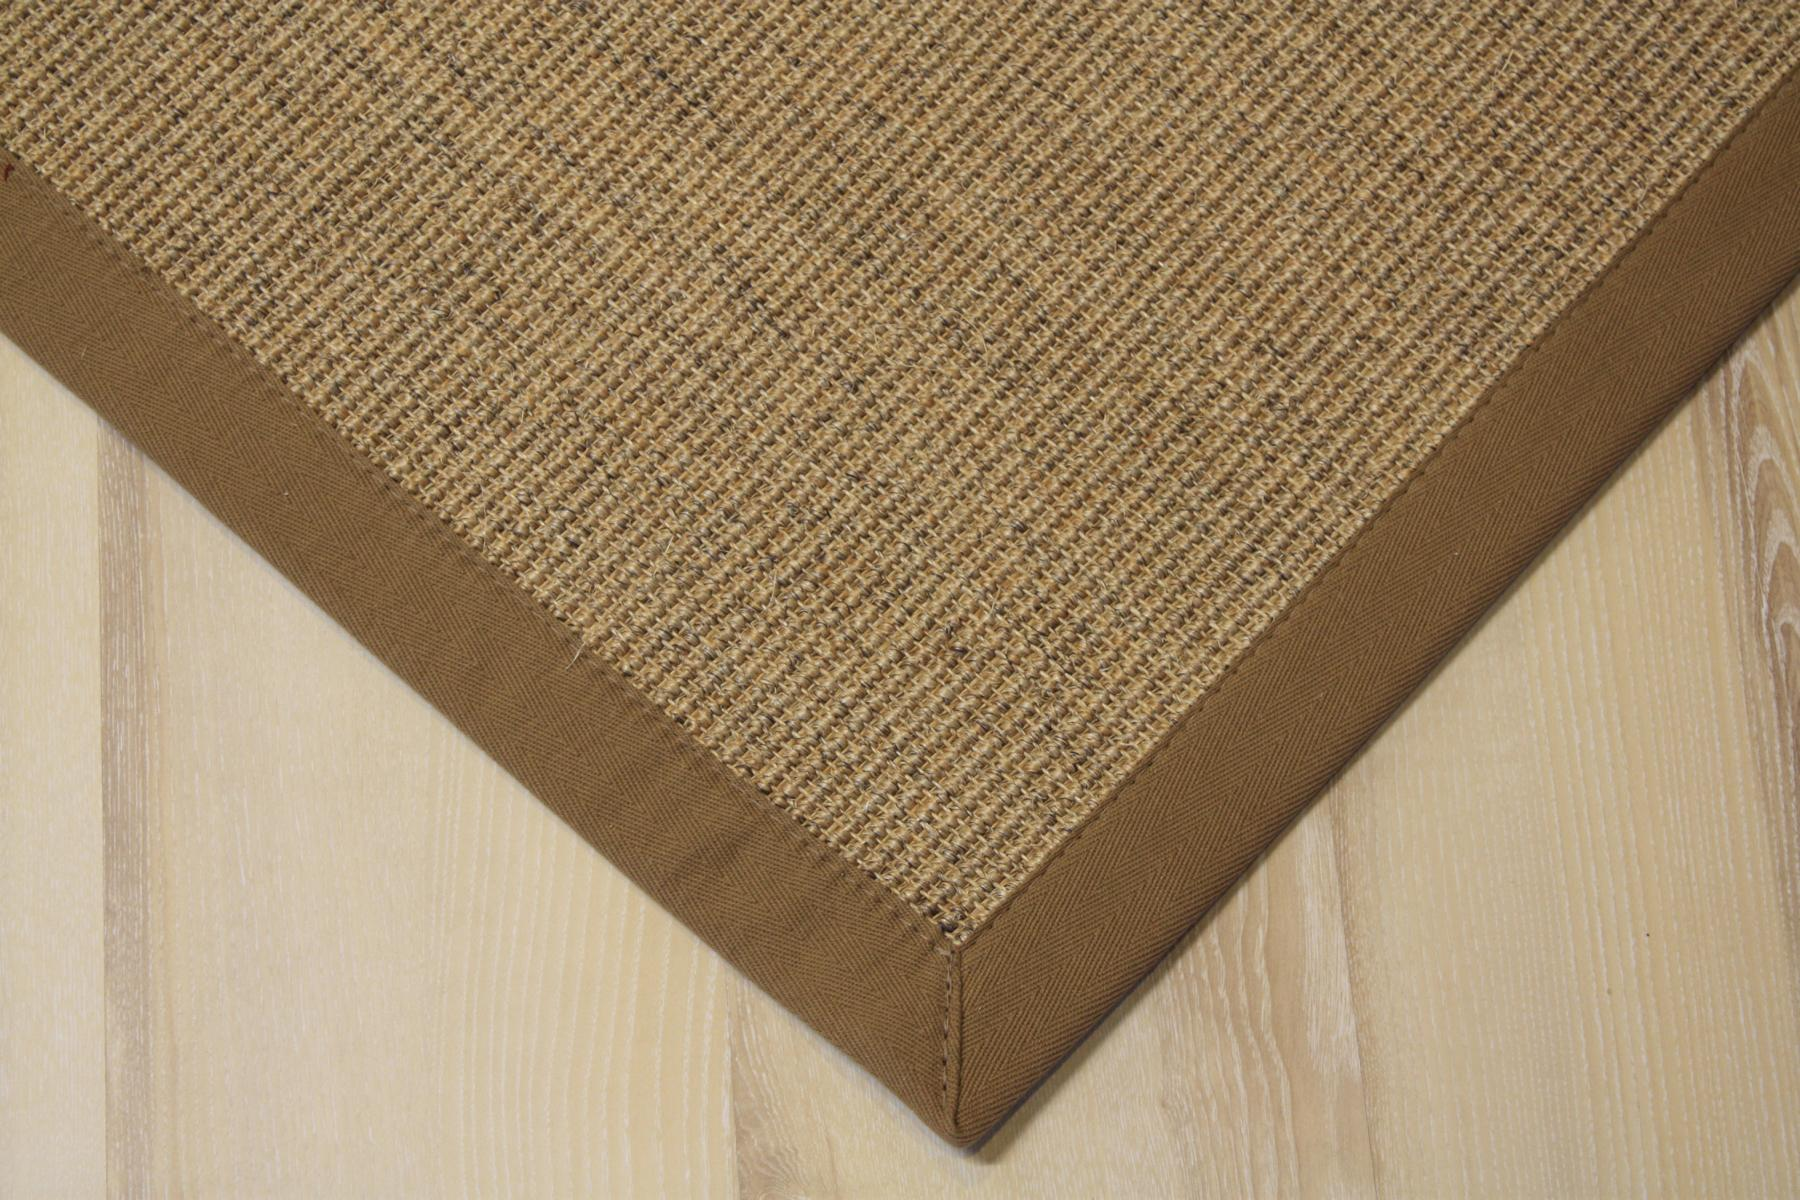 sisal tapis manaus avec bordure diapr 200 x 200 cm 100 sisal ebay. Black Bedroom Furniture Sets. Home Design Ideas